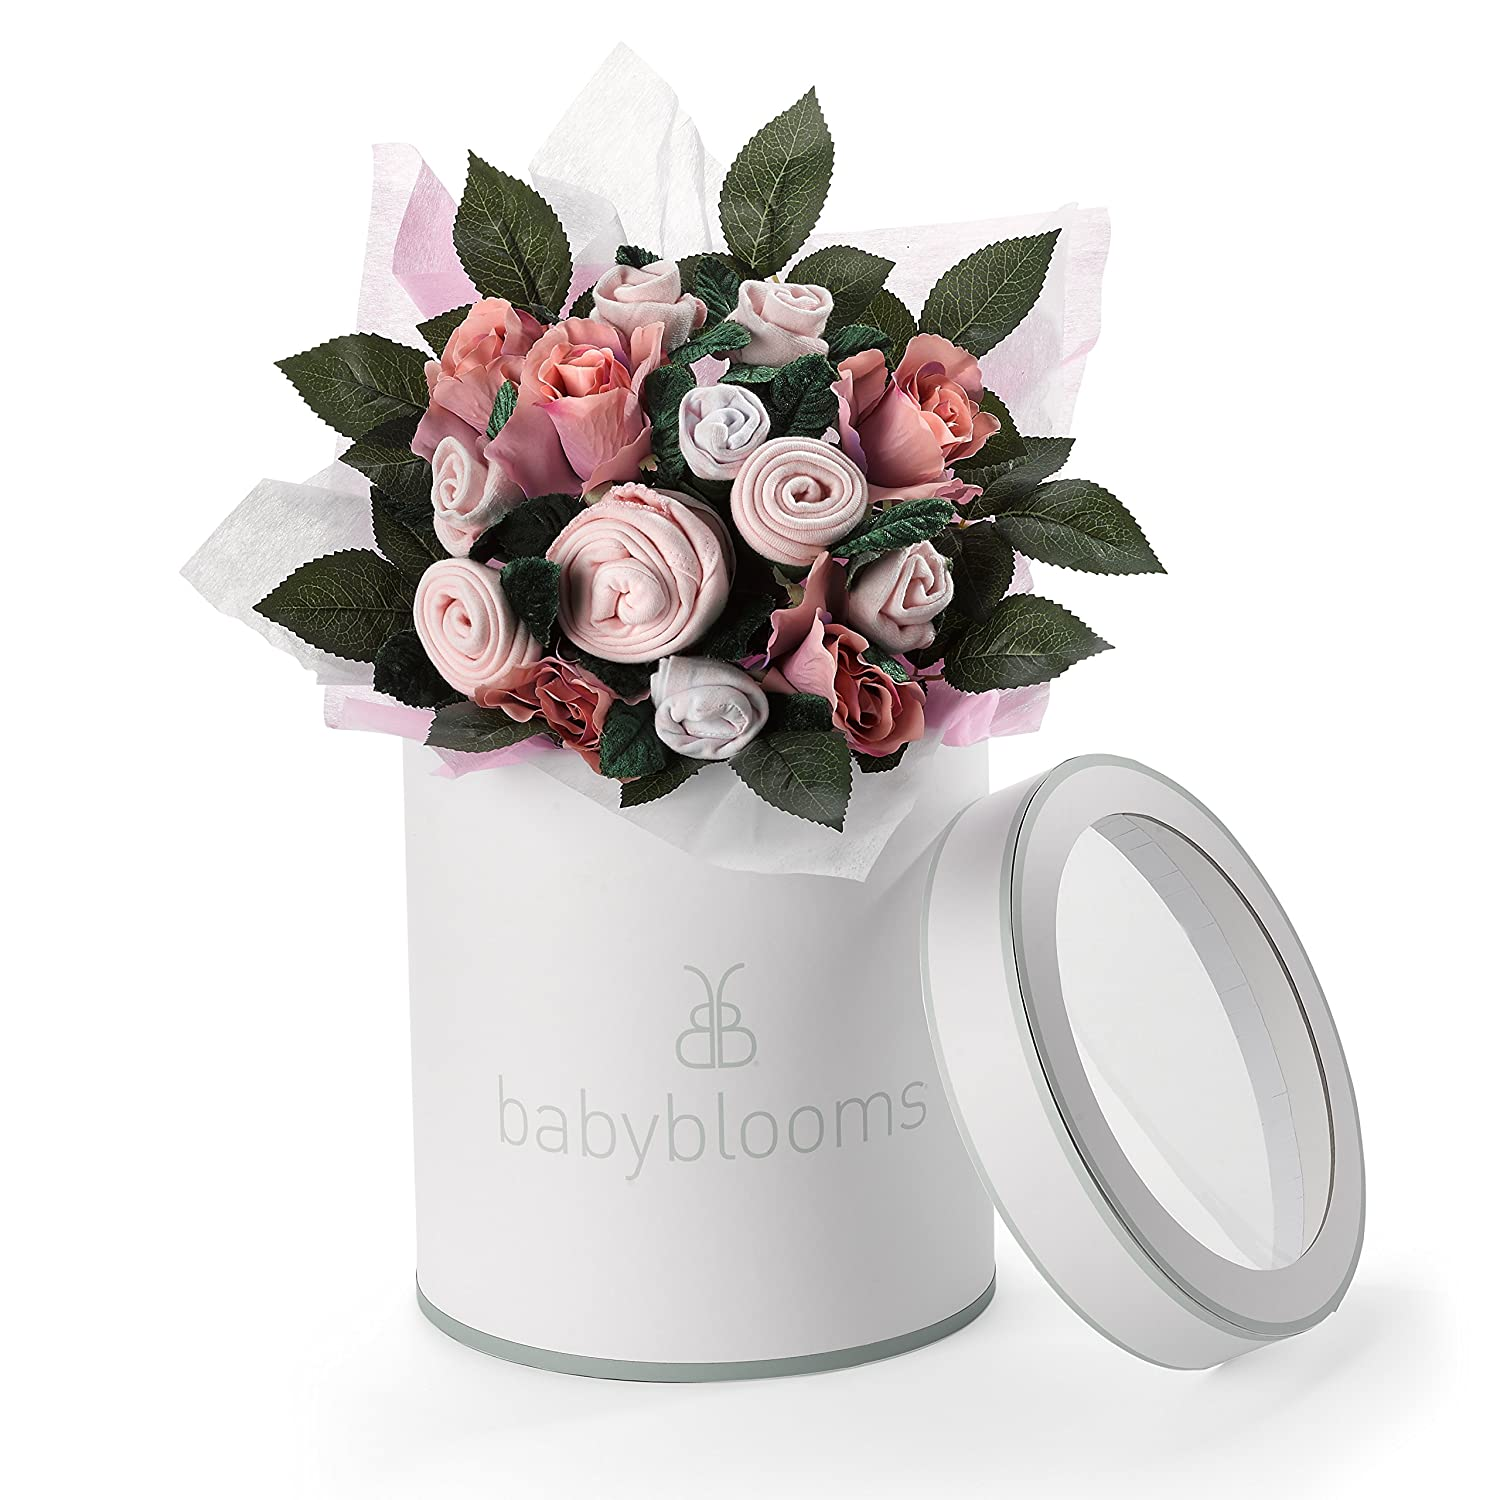 Main Tied Bouquet P Babyblooms BQM20001